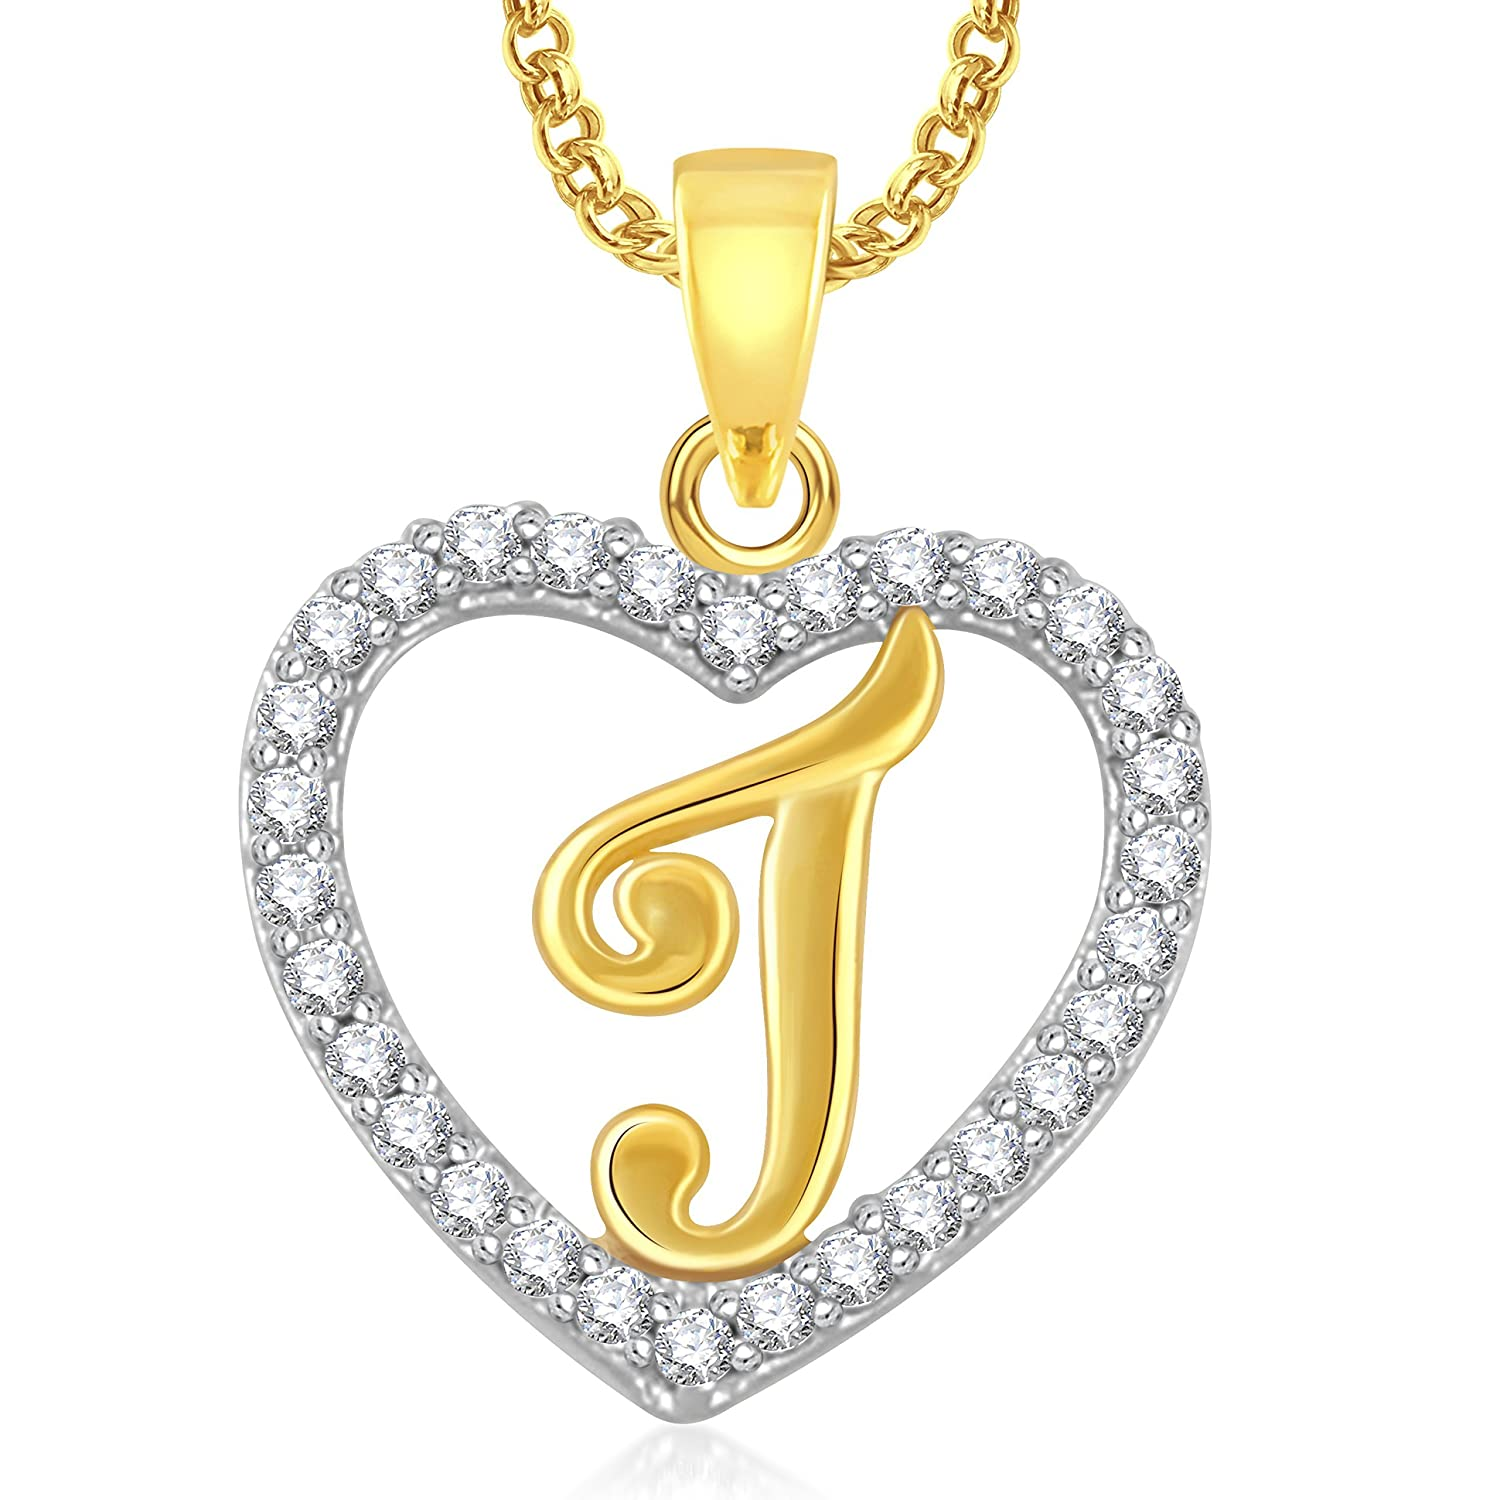 pendant capital jewelry necklace alphabet and charm letter mens filled trendsmax color gold silver products chain initital fashion women